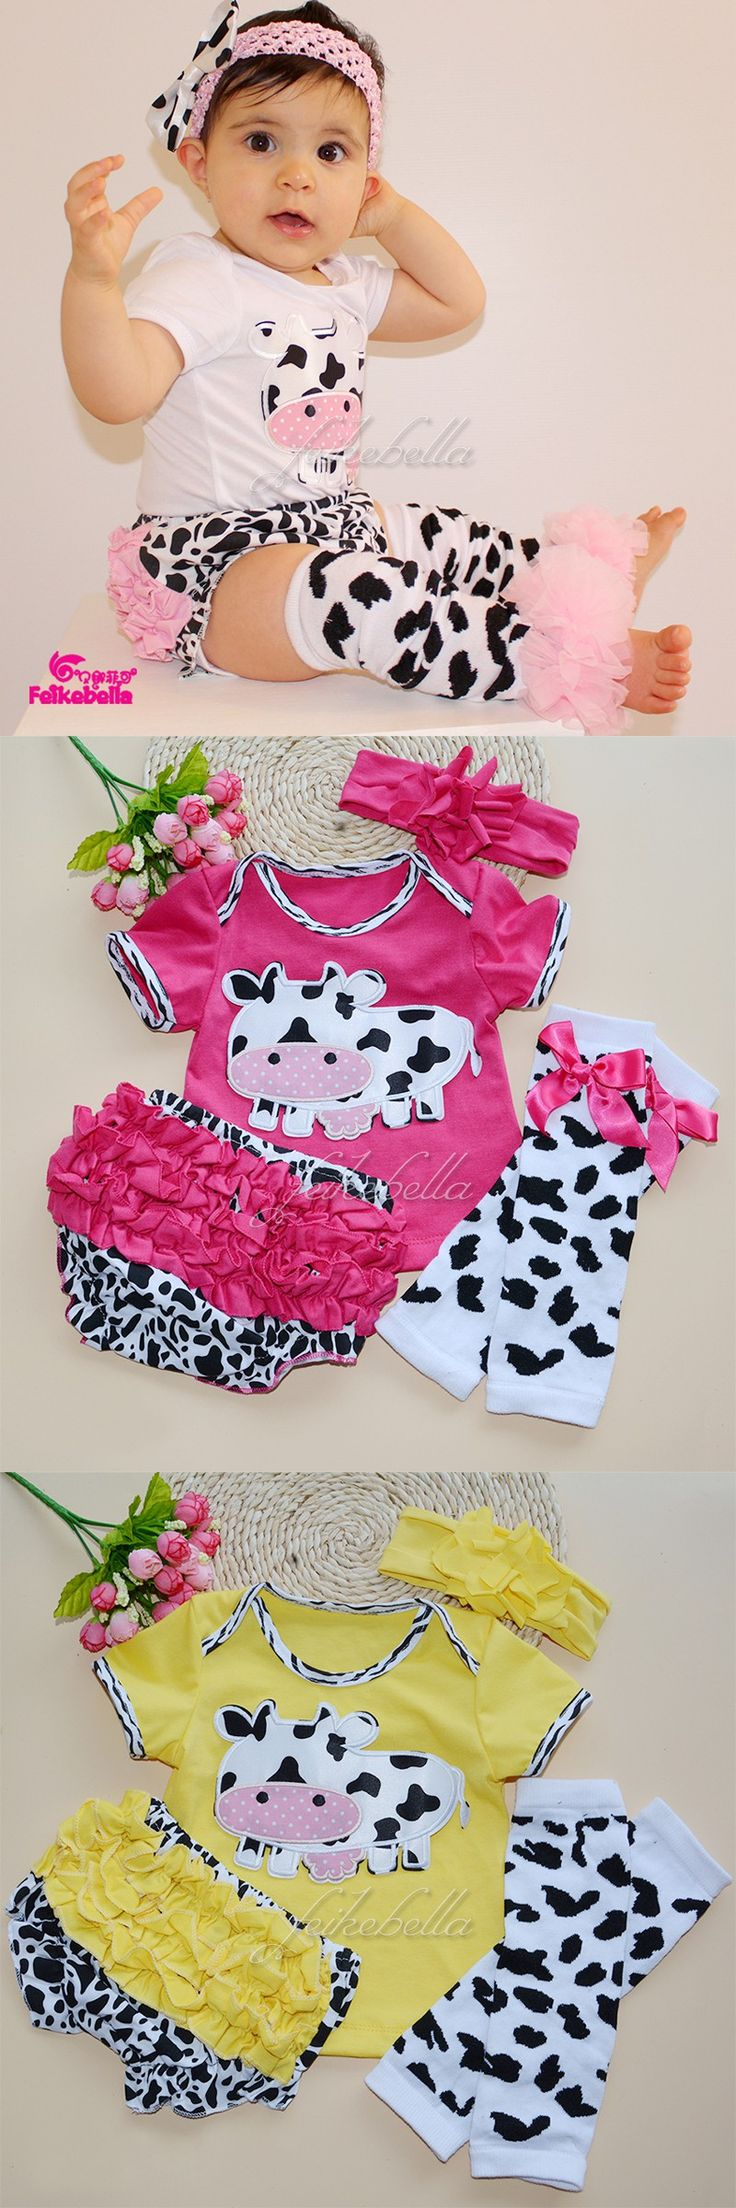 Baby Clothing Set Cotton Baby Girls Dairy Cow Print T Shirt Top + Layette Ruffles Shorts Pants +Legging Newborn Clothes